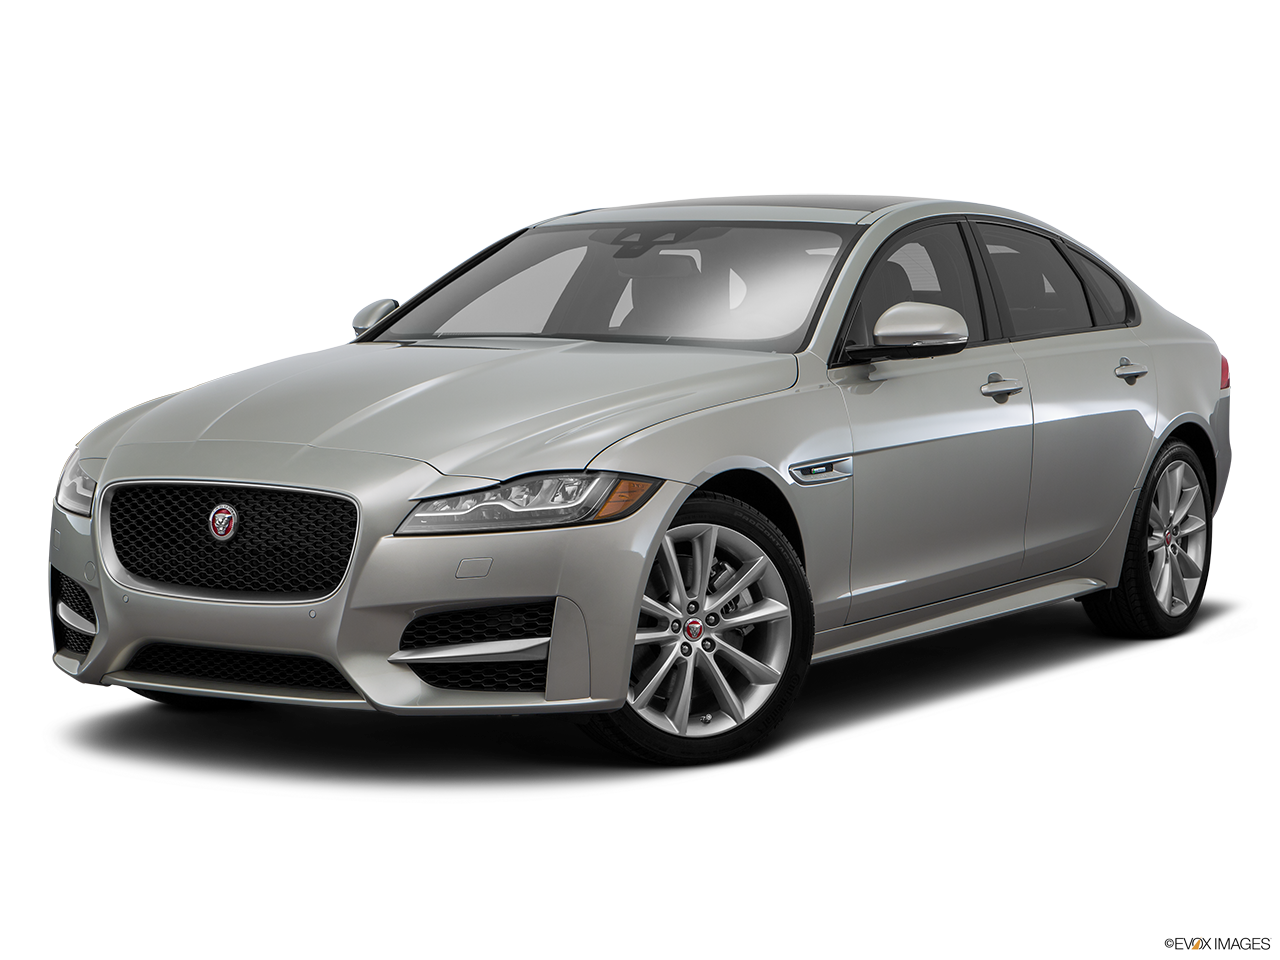 Test Drive A 2016 Jaguar XF at Galpin Jaguar in Los Angeles